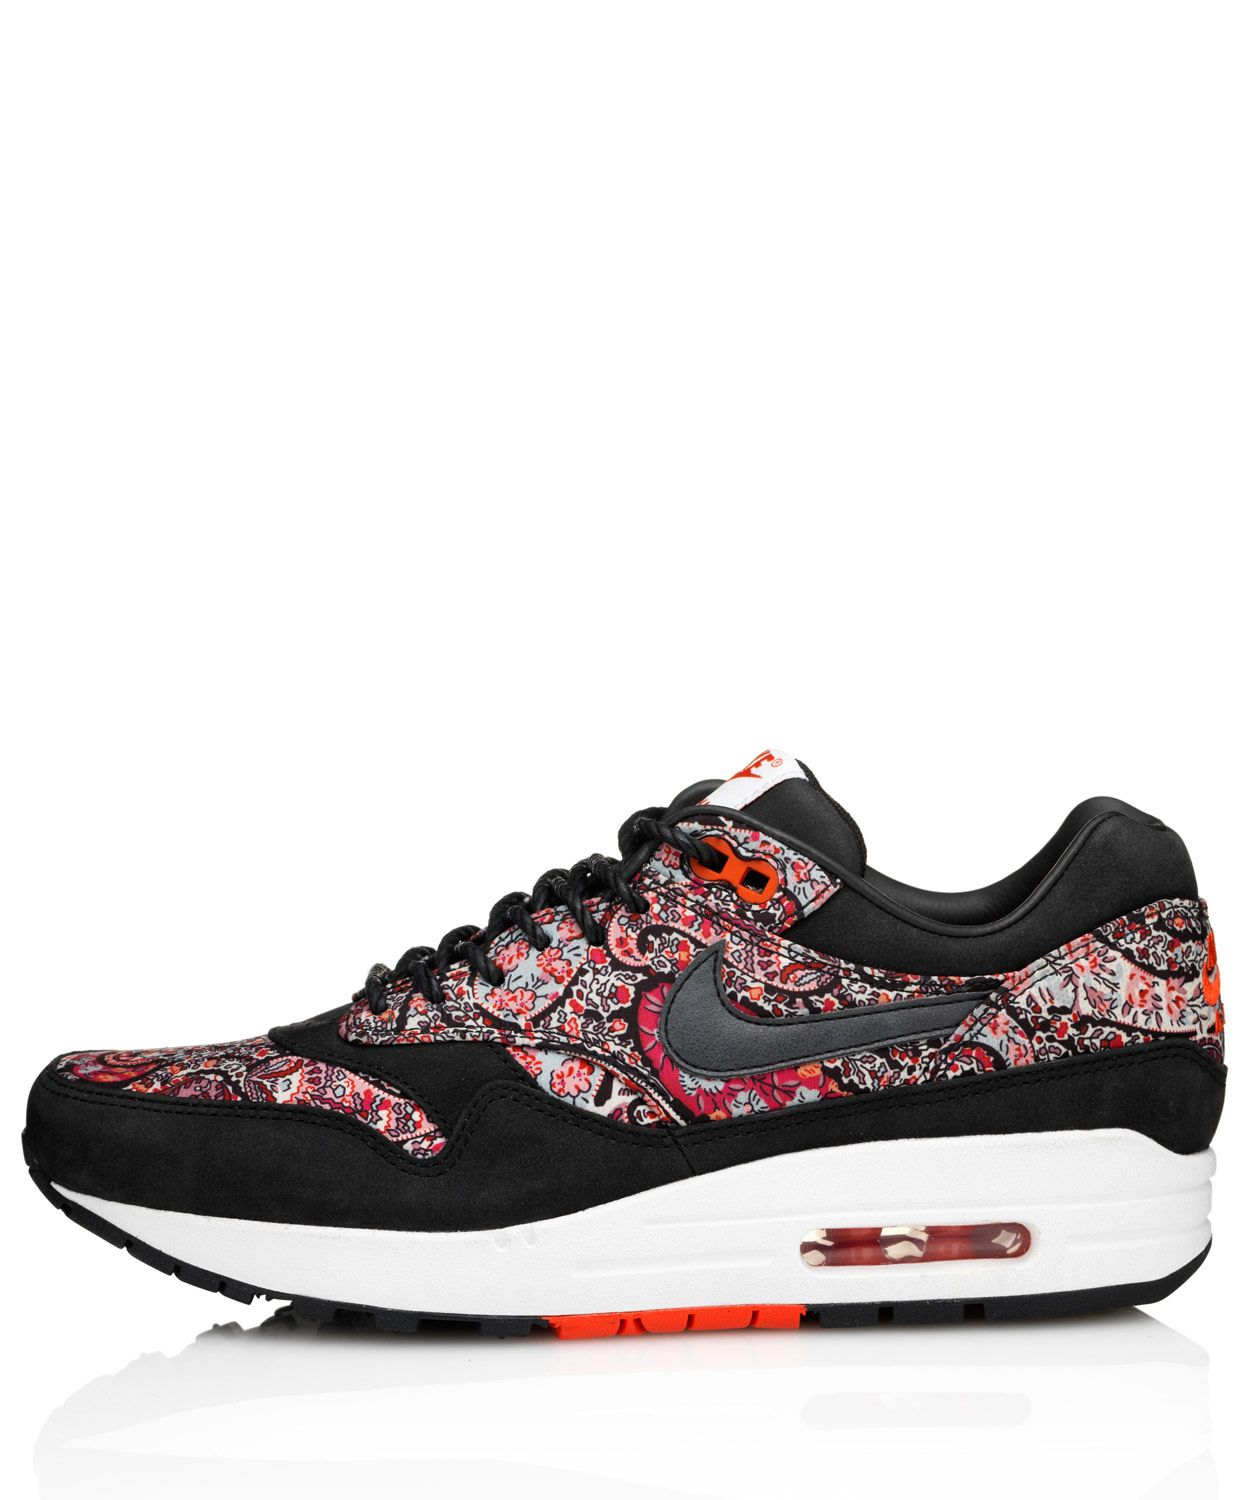 nike air max 1 x liberty london 'pixel pack 'n play